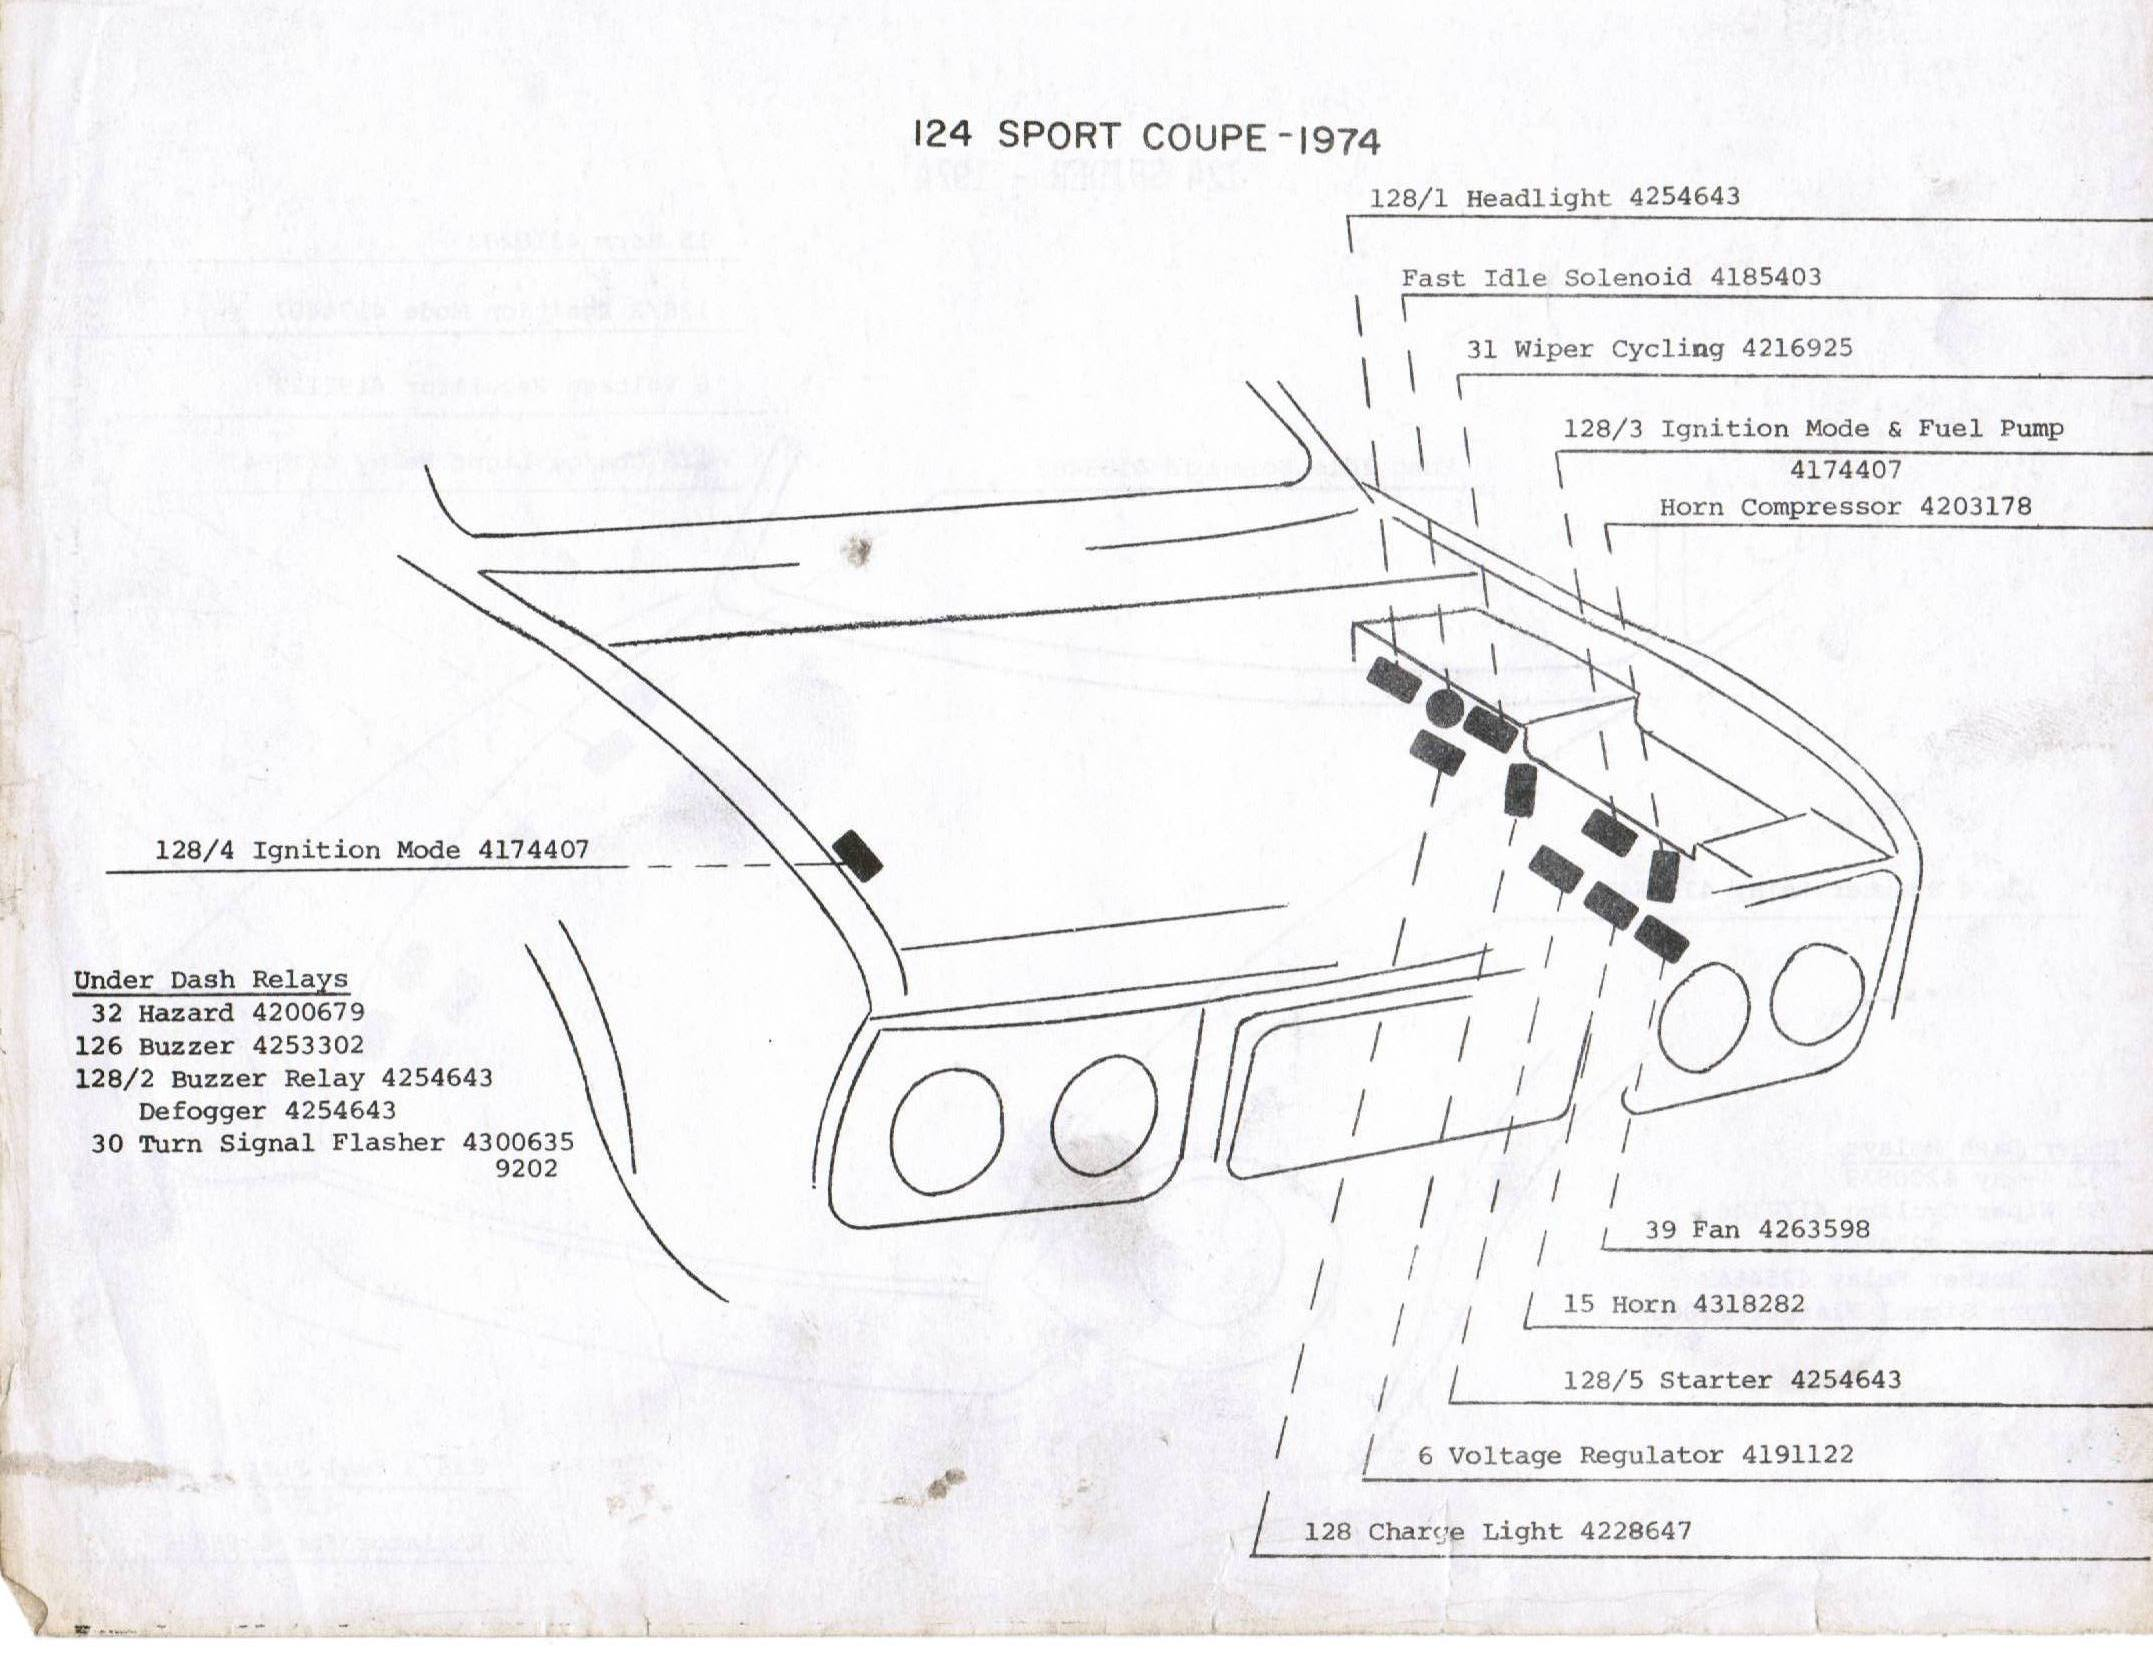 Index Of Wcm Personal Fiat 124 Coupe Wiring Diagram 74 Sport Cp Relays